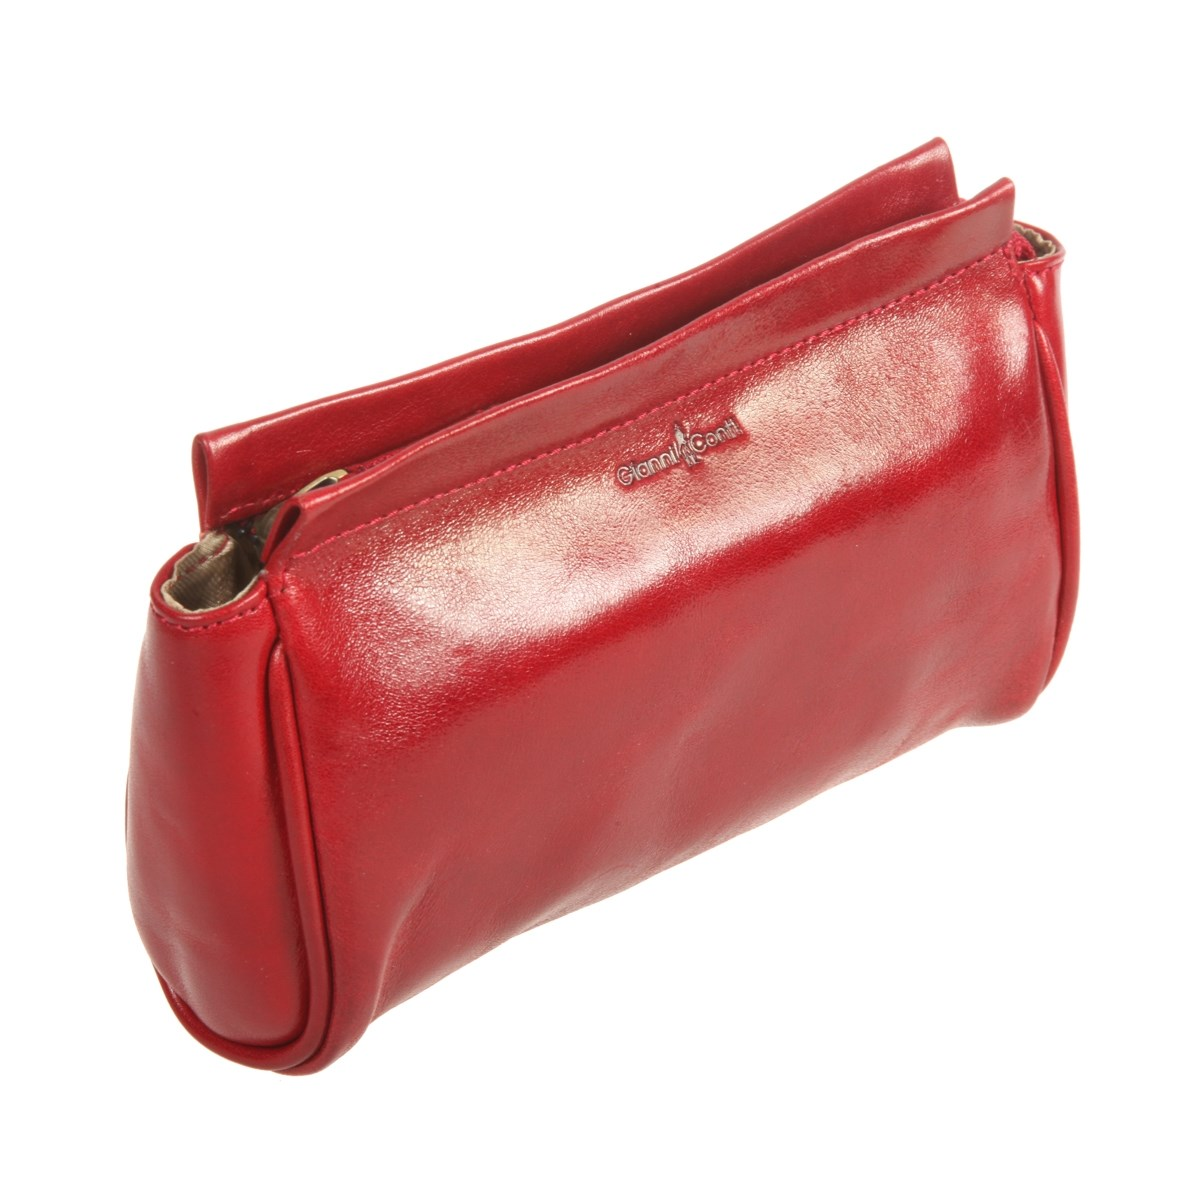 Make Up Bag Gianni Conti 9405197 red portable canvas flower floral cosmetic bag travel toiletry wash makeup storage bags organizer make up case for women